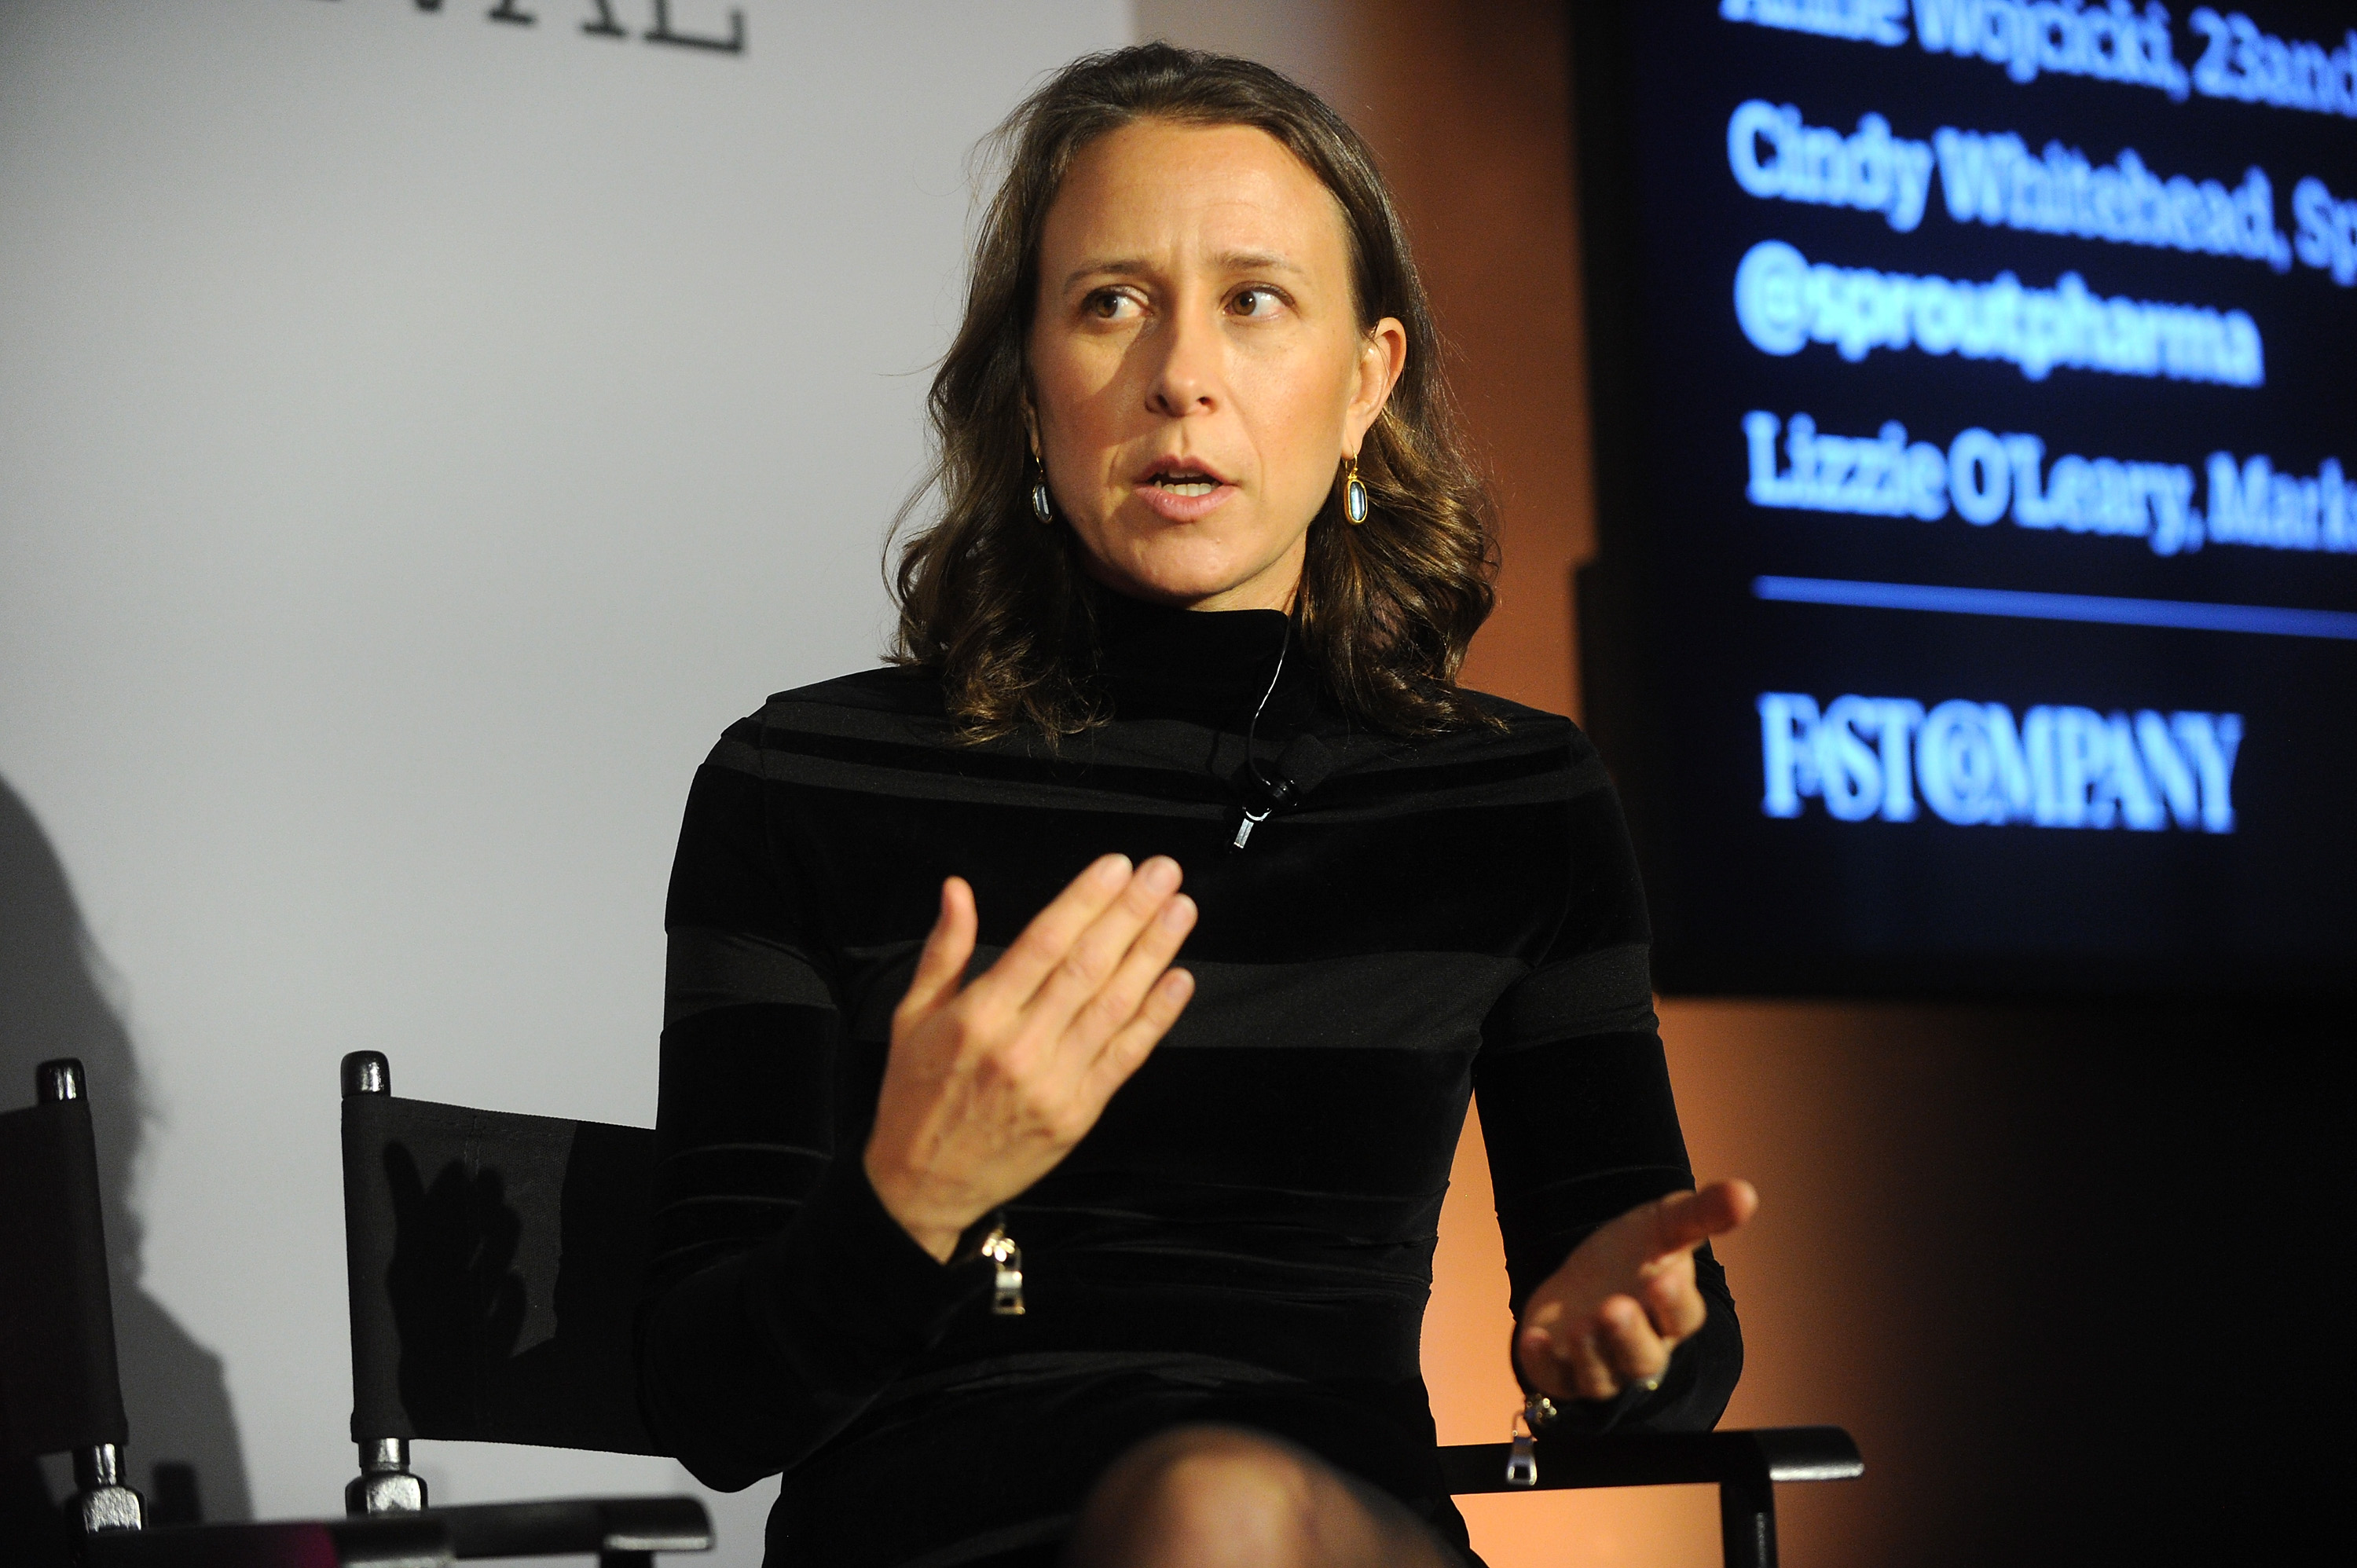 23andMe CEO Anne Wojcicki speaks on stage during 'The Fast Company Innovation Festival' - Data + Drugs: The New Evolution Of Drug Making With 23andMe And Sprout on Nov. 10, 2015 in New York City.